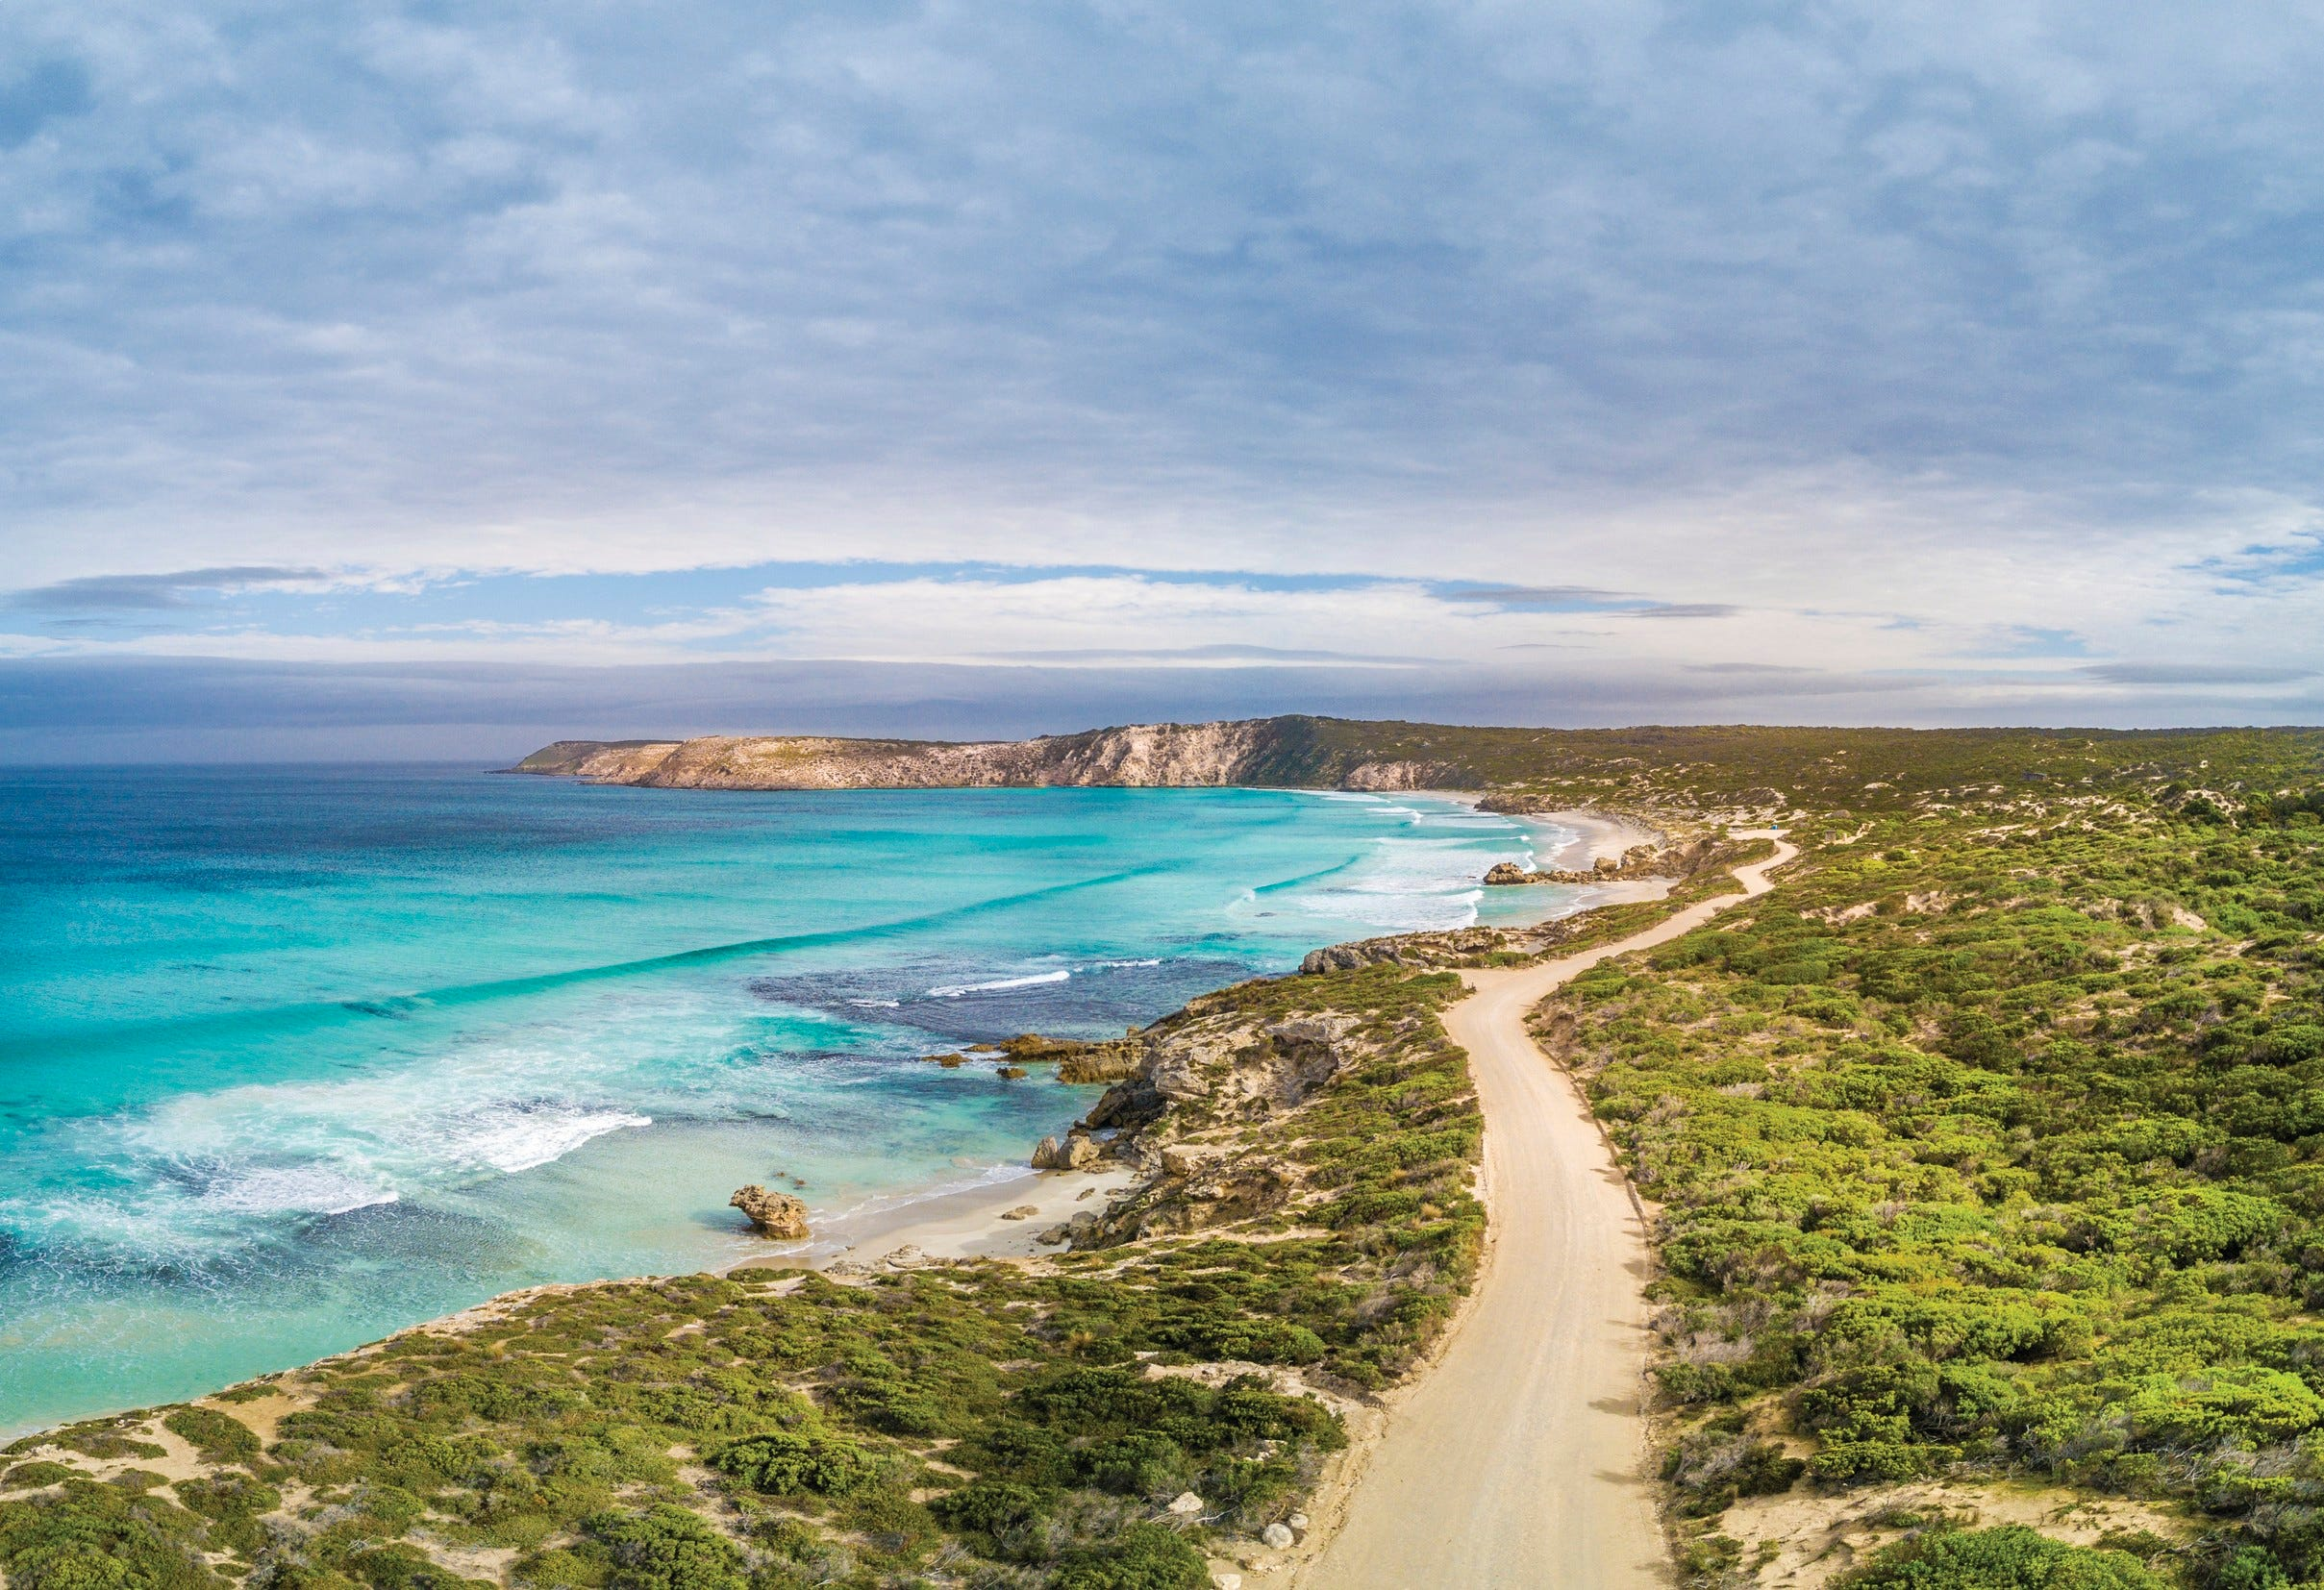 Where kangaroos outnumber residents (by a lot): Kangaroo Island rivals Galapagos with wildlife